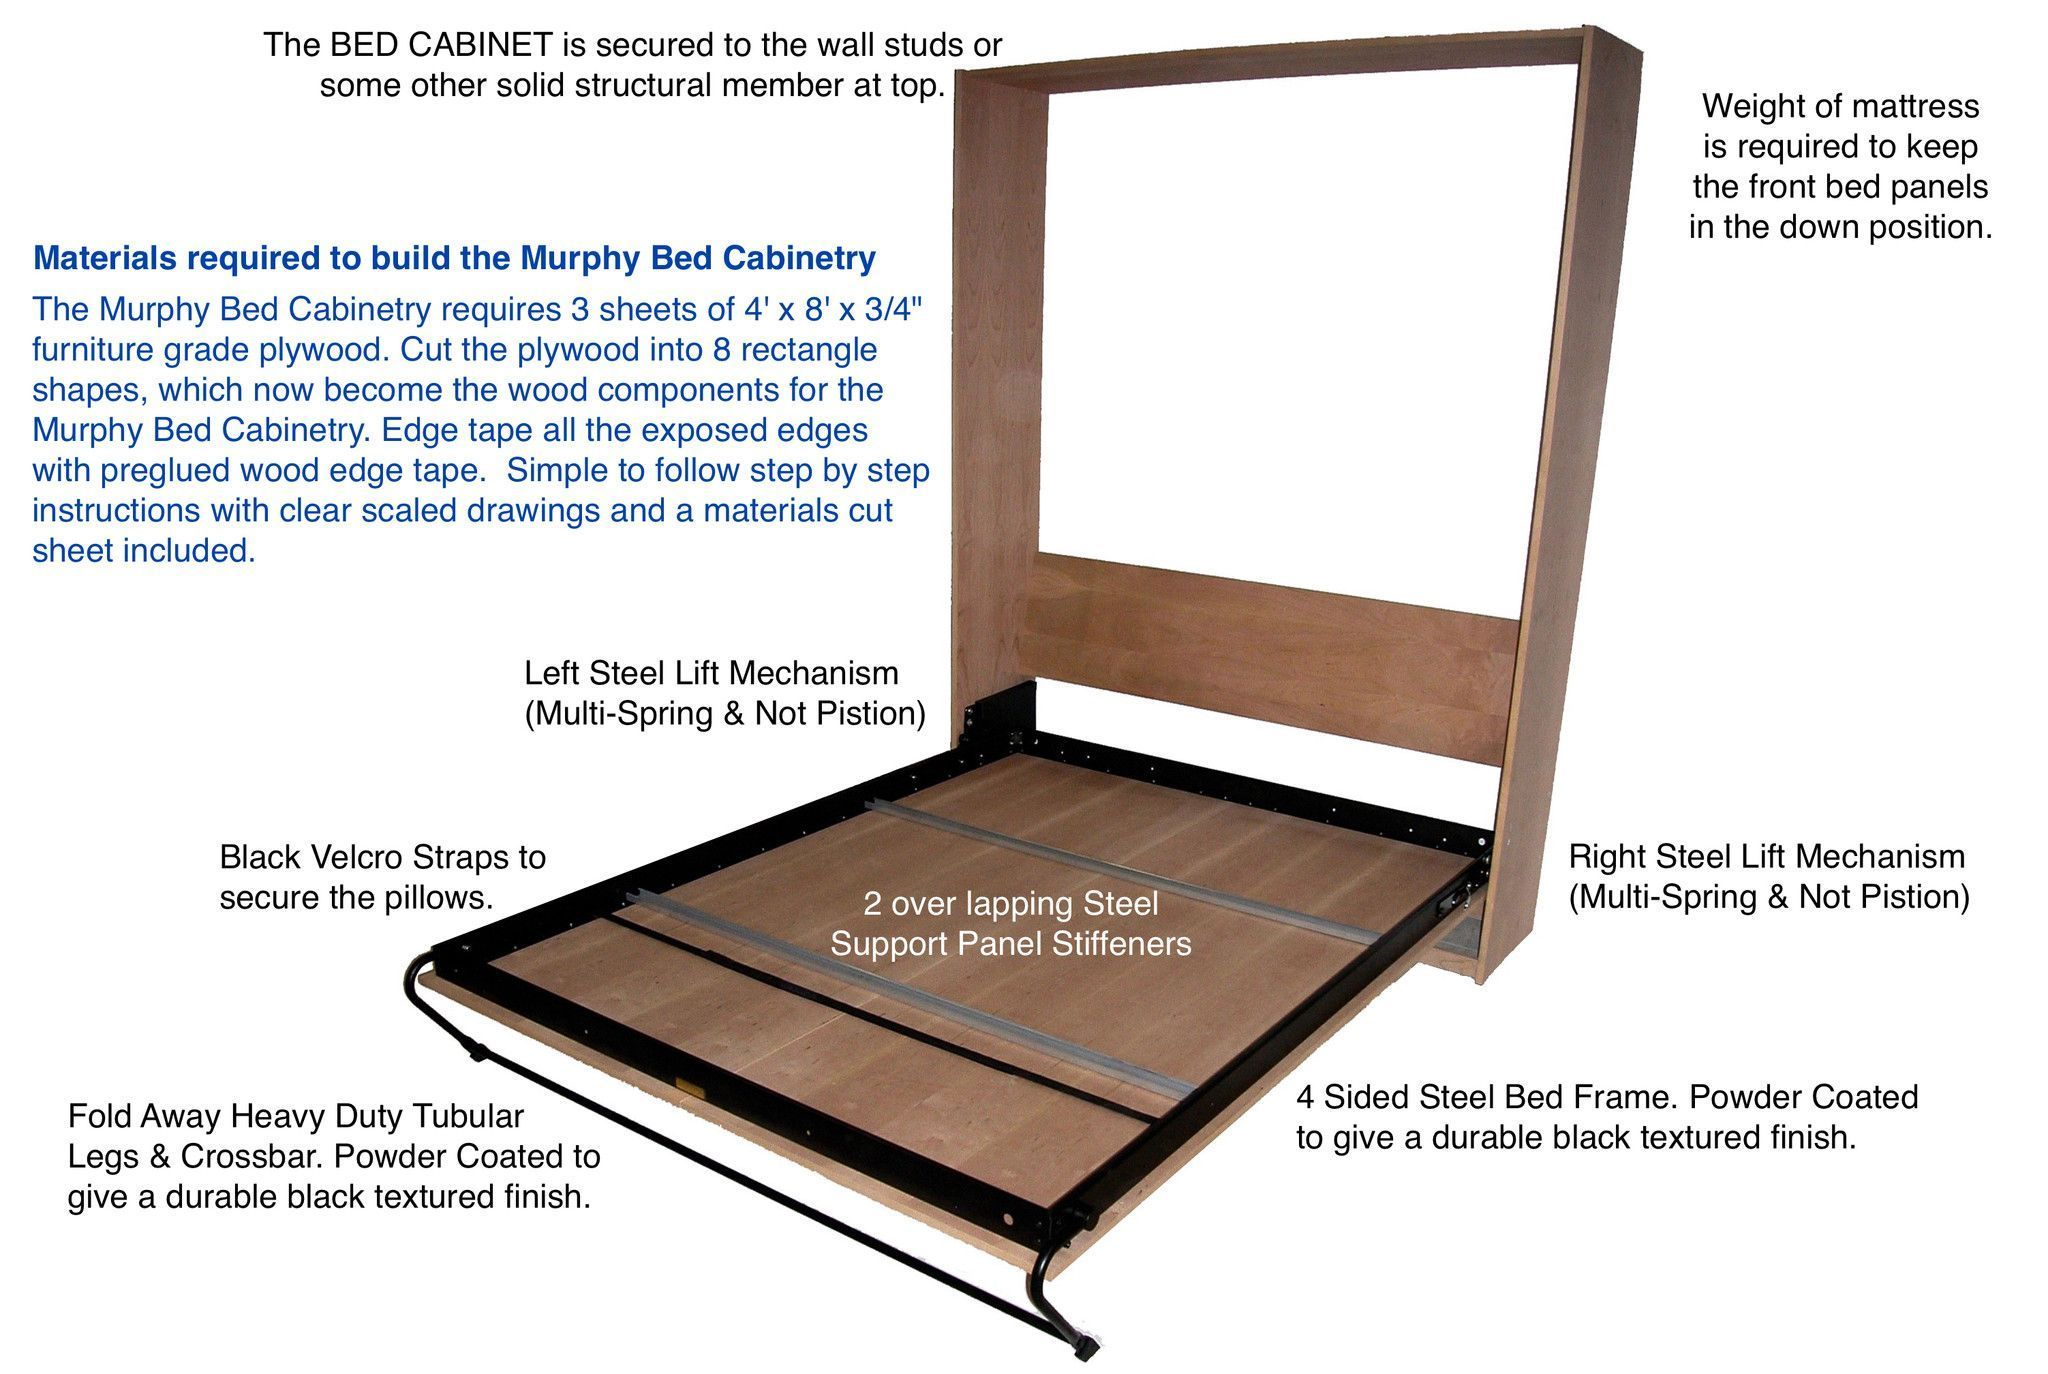 DIY Vertical Supreme Steel Frame & Mechanism Kits | Murphy bed ...